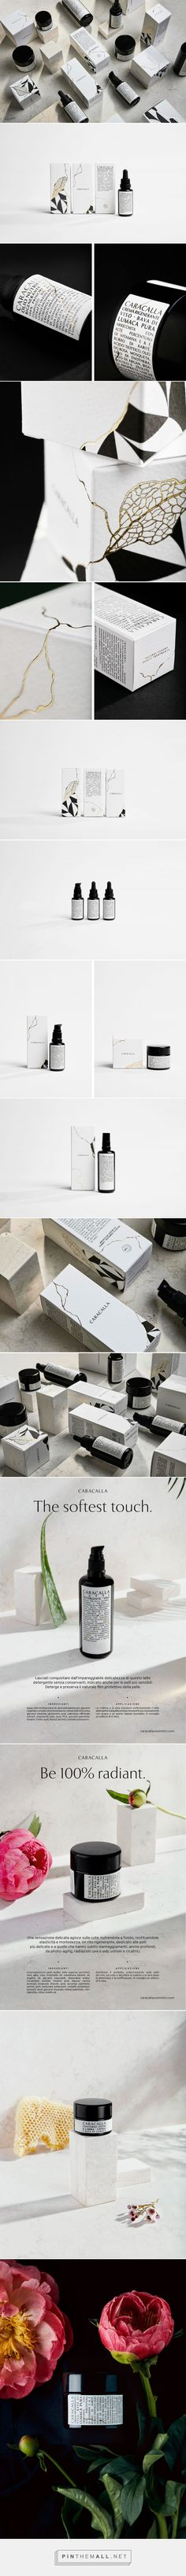 CARACALLA Cosmetics packaging design by CaroselloLab - http://www.packagingoftheworld.com/2018/01/caracalla-cosmetics.html